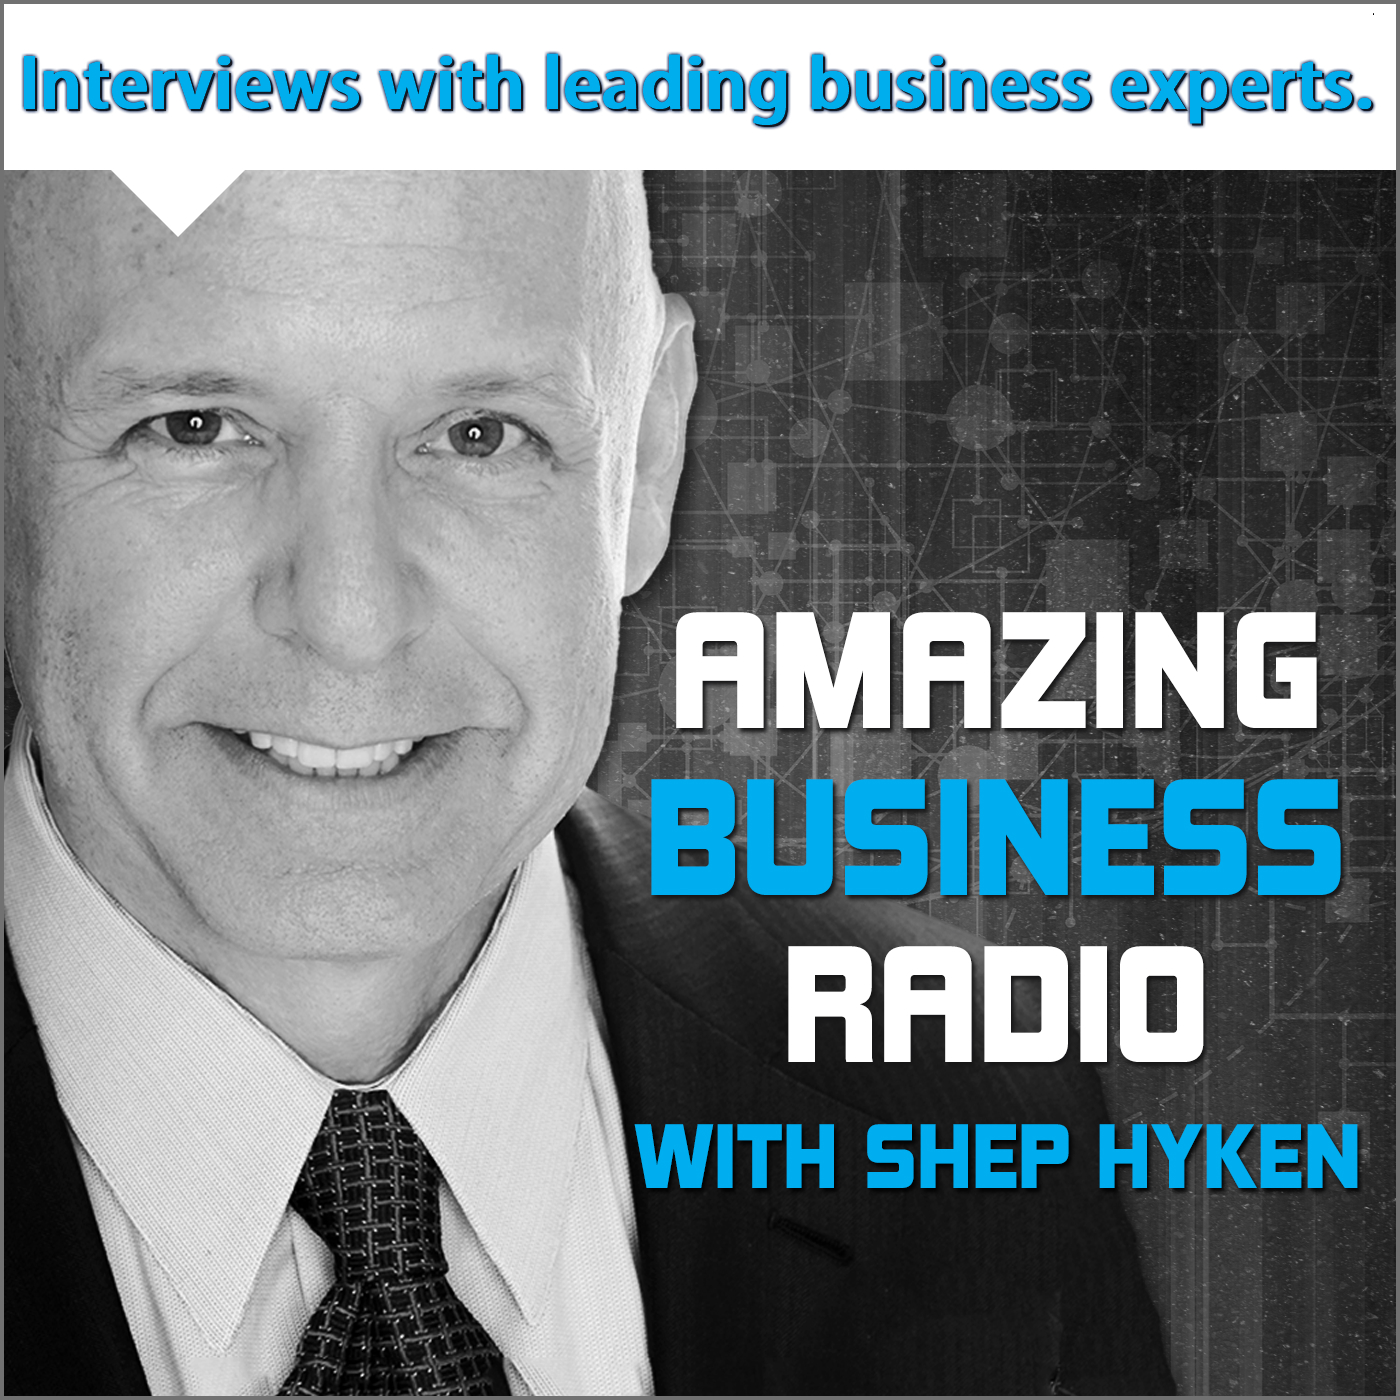 Amazing Business Radio with Shep Hyken